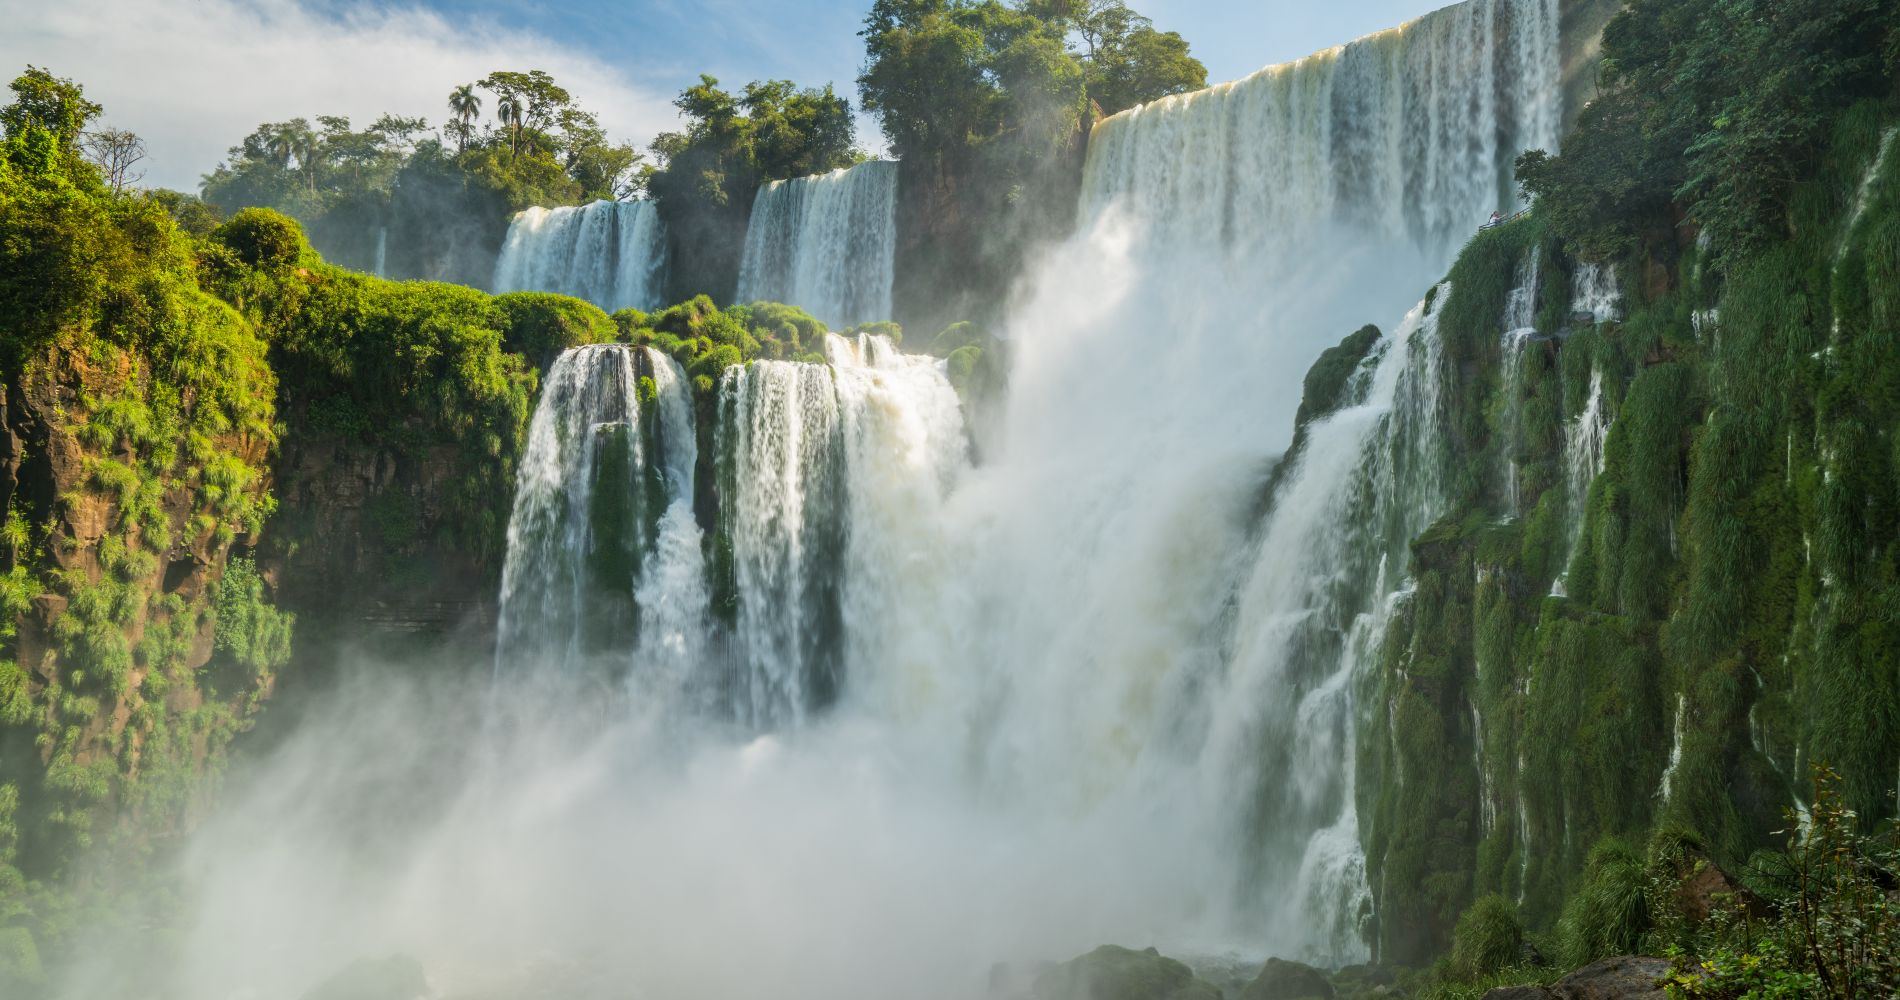 4x4 in the Jungle, Boat Ride and Argentinean Falls